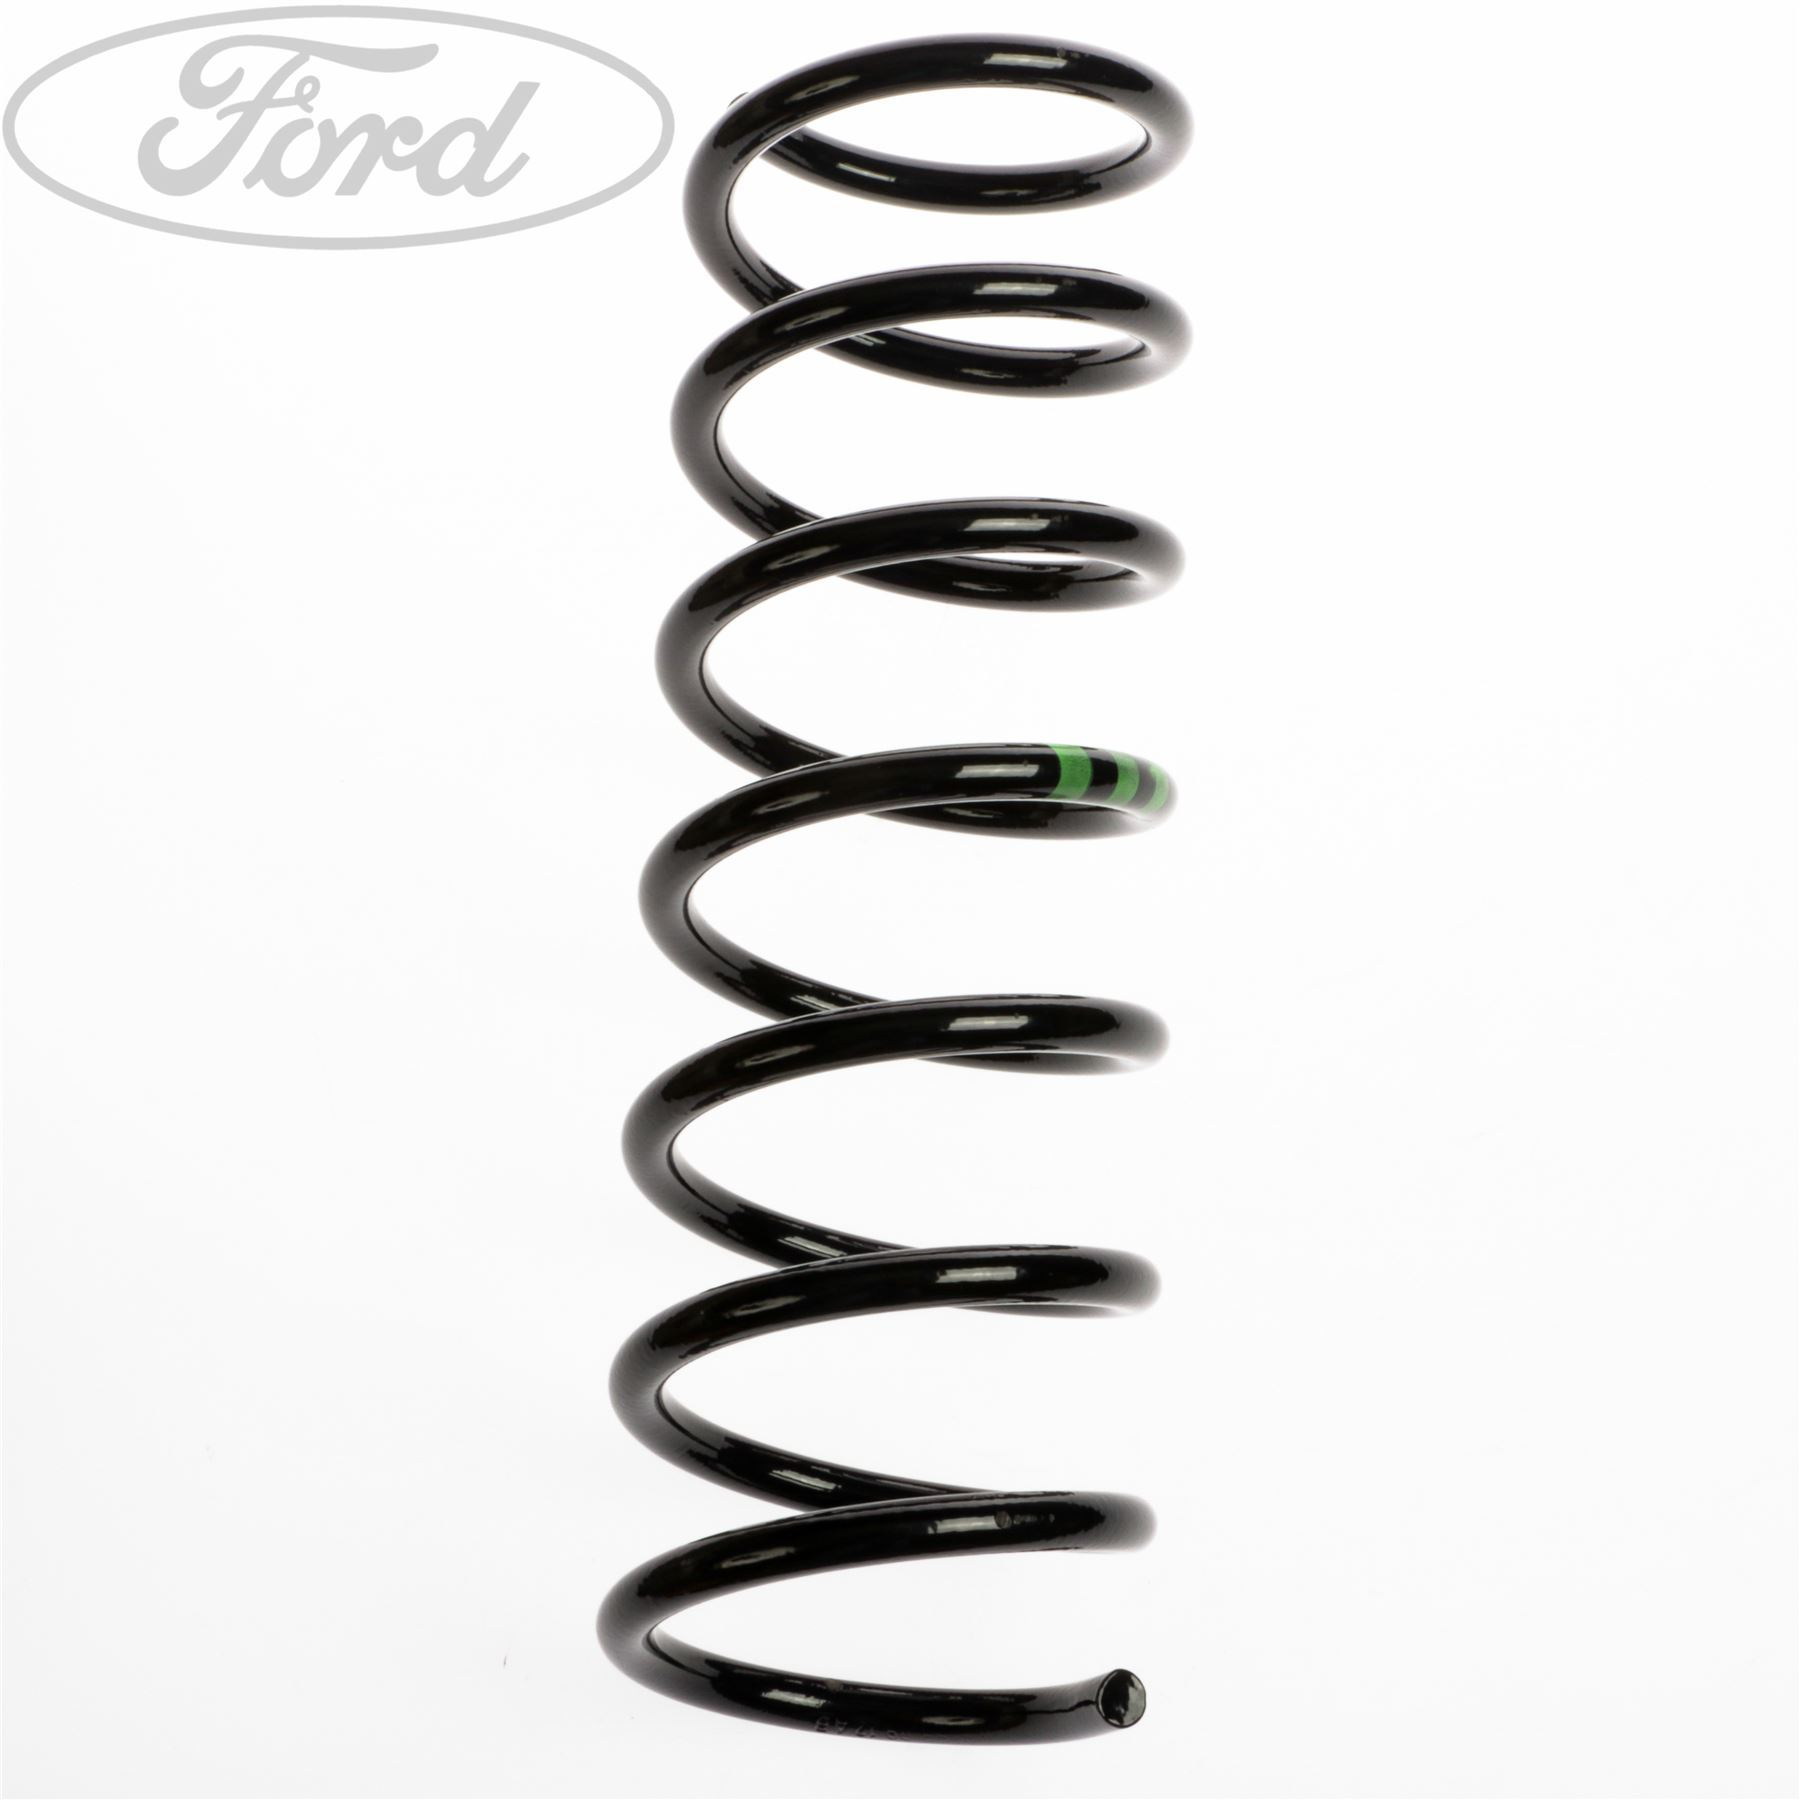 Genuine Ford Focus Mk2 Rear O S Or N S Suspension Coil